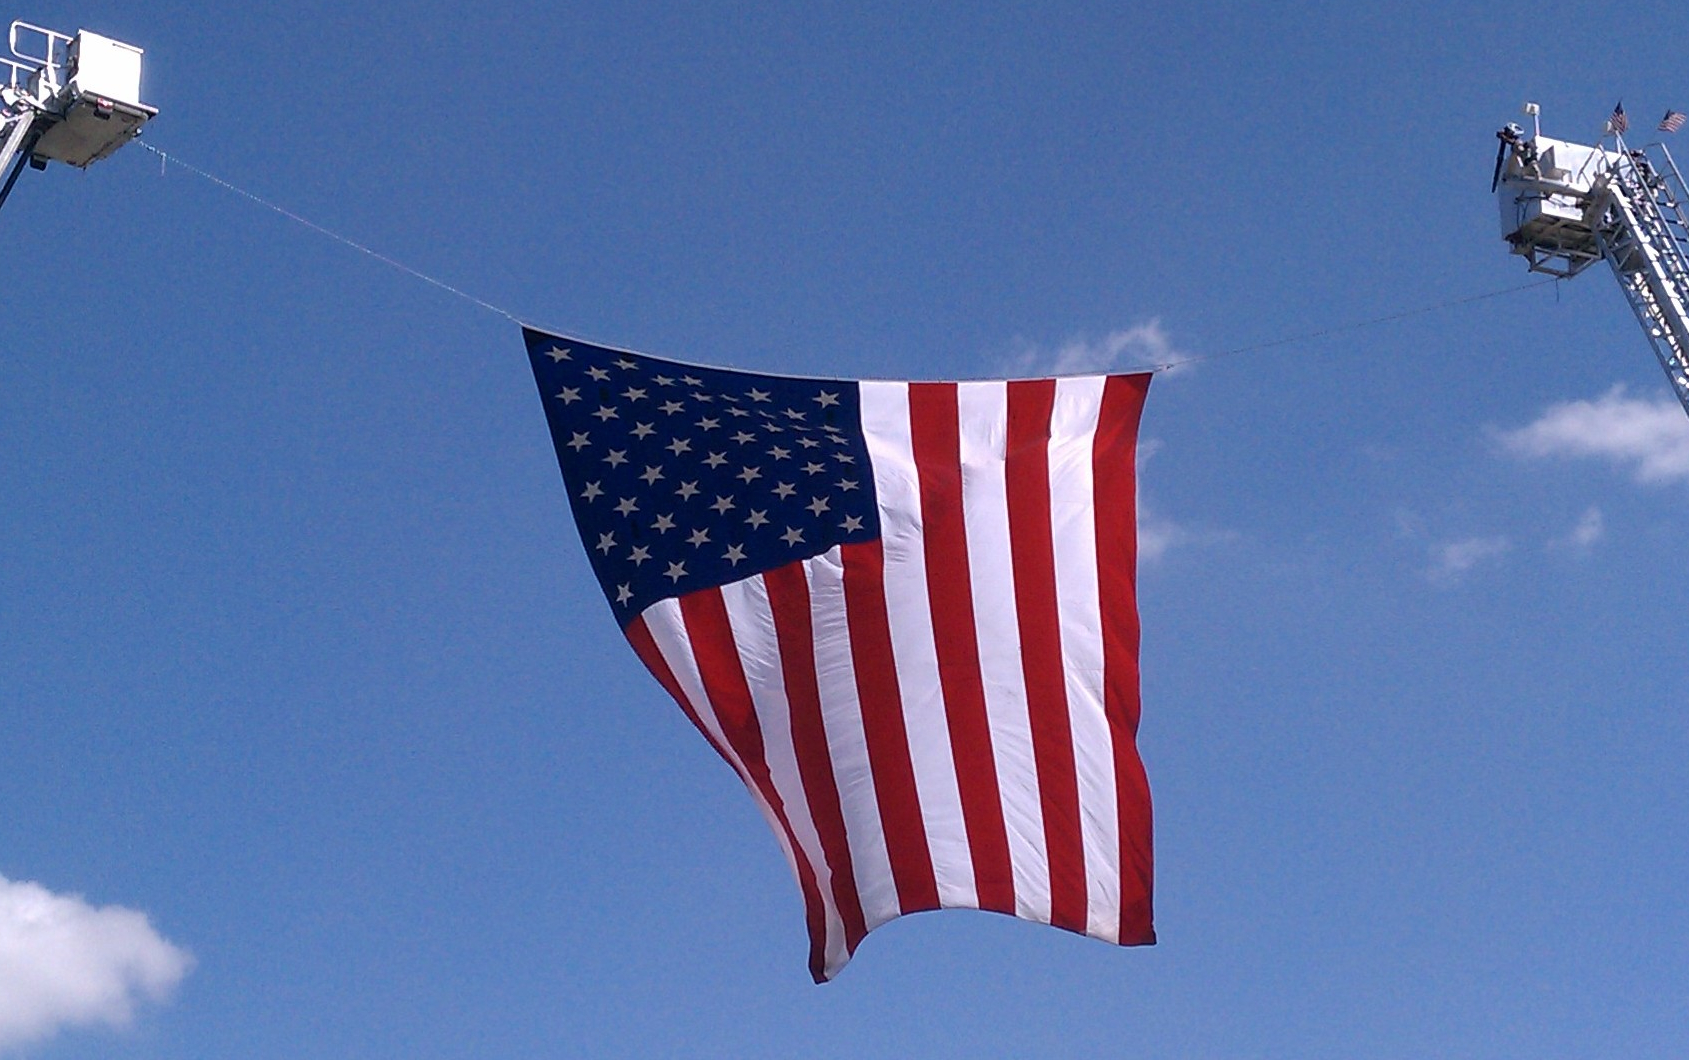 Large flag hanging from cranes displayed at the 9/11 10 year remembrance ceremony in Omaha.